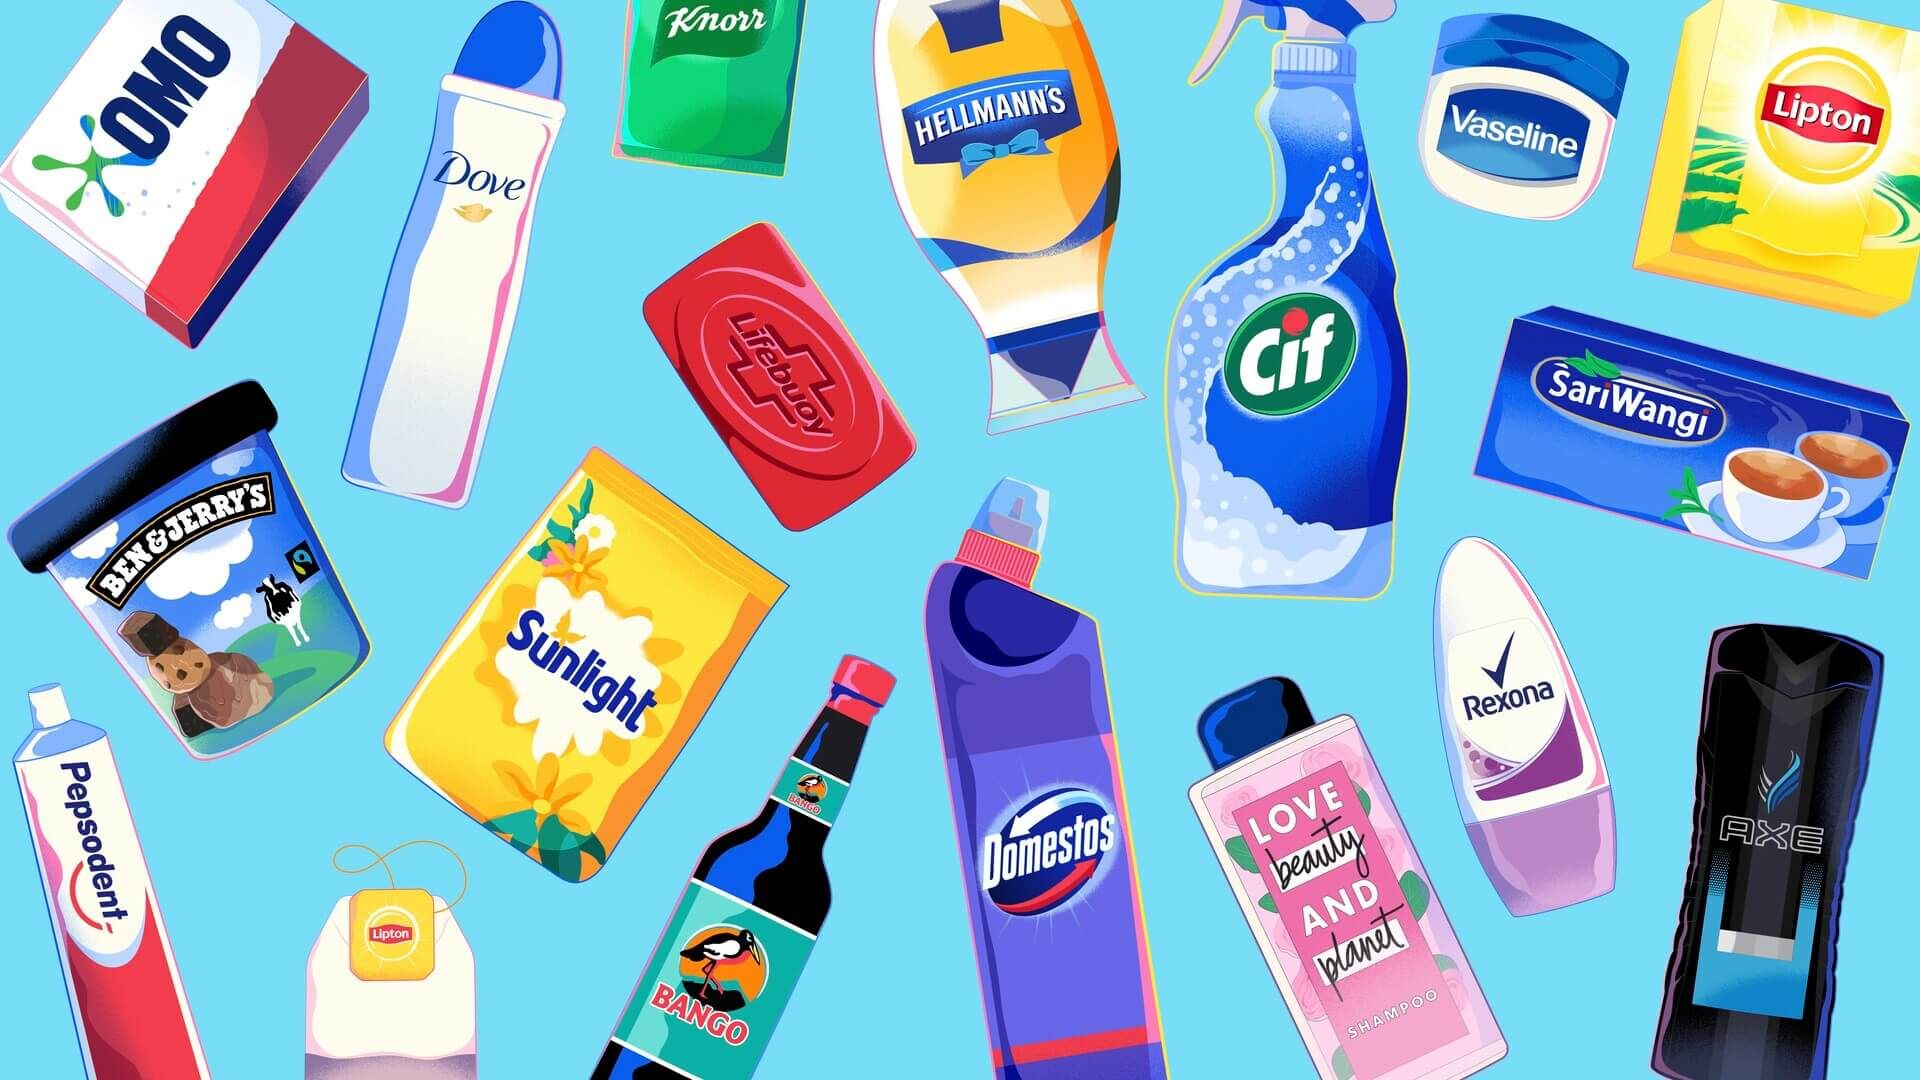 Unilever products